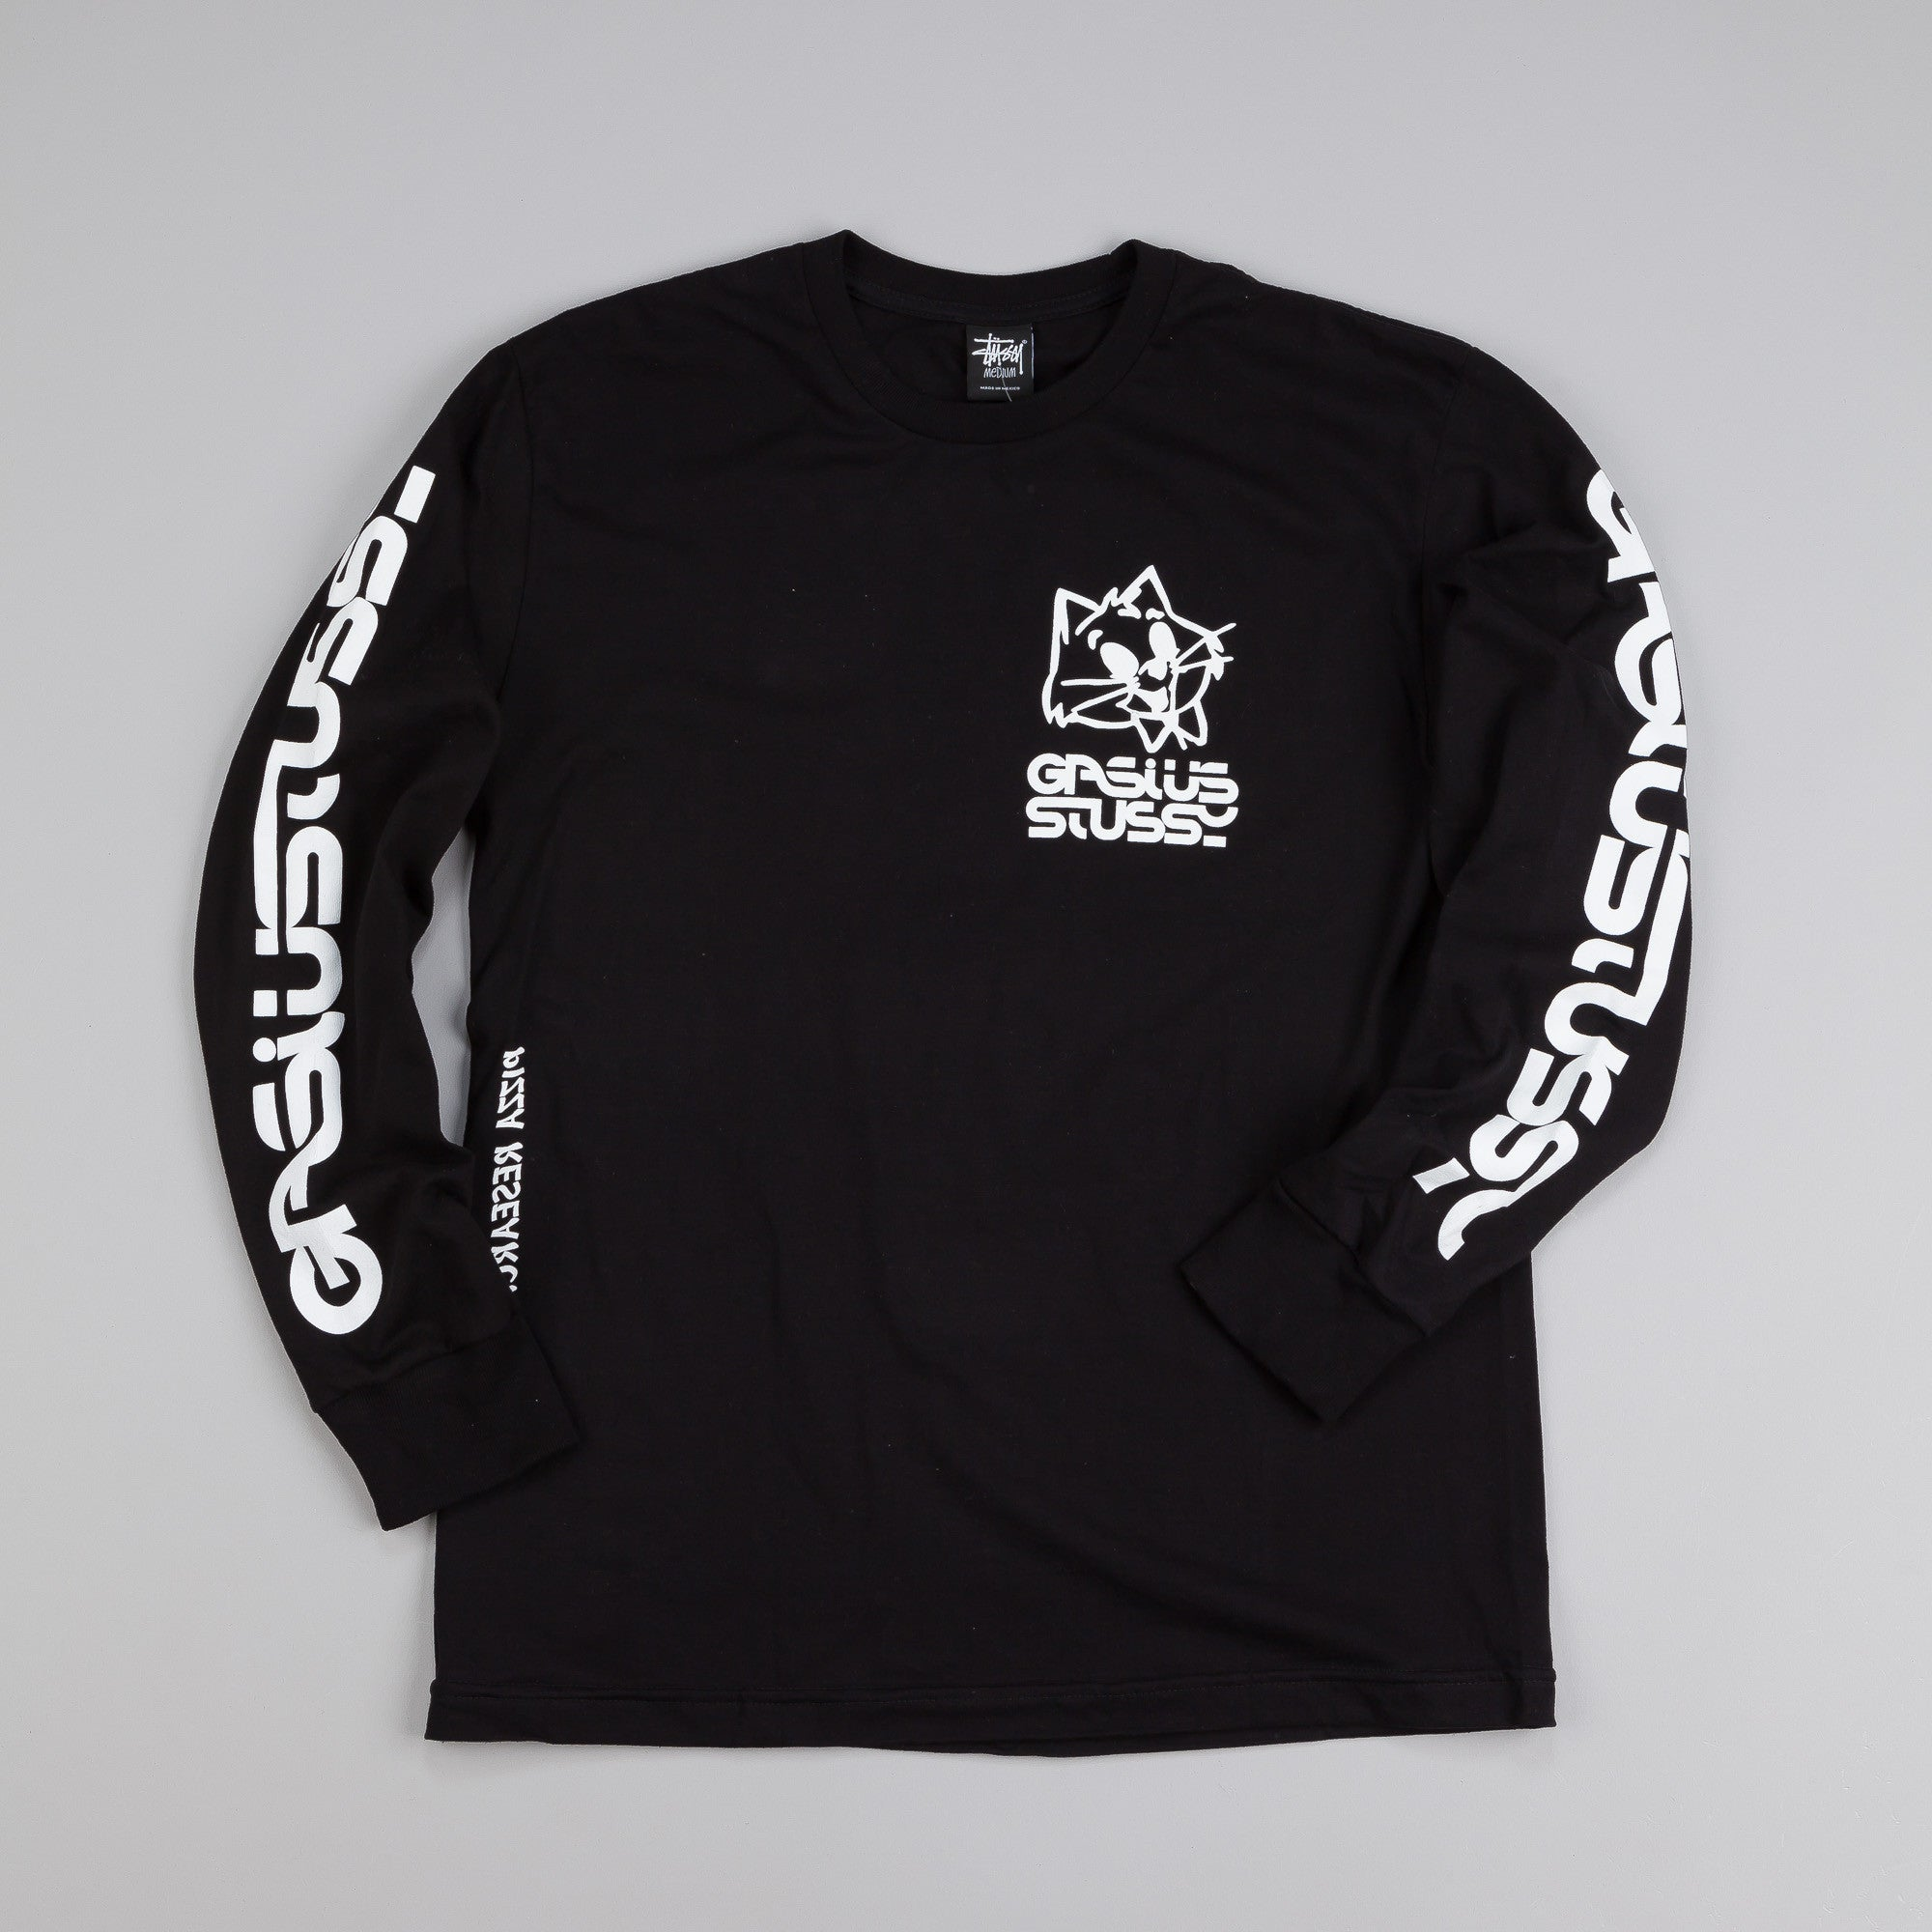 Stussy x Gasius Cat L/S T Shirt Black